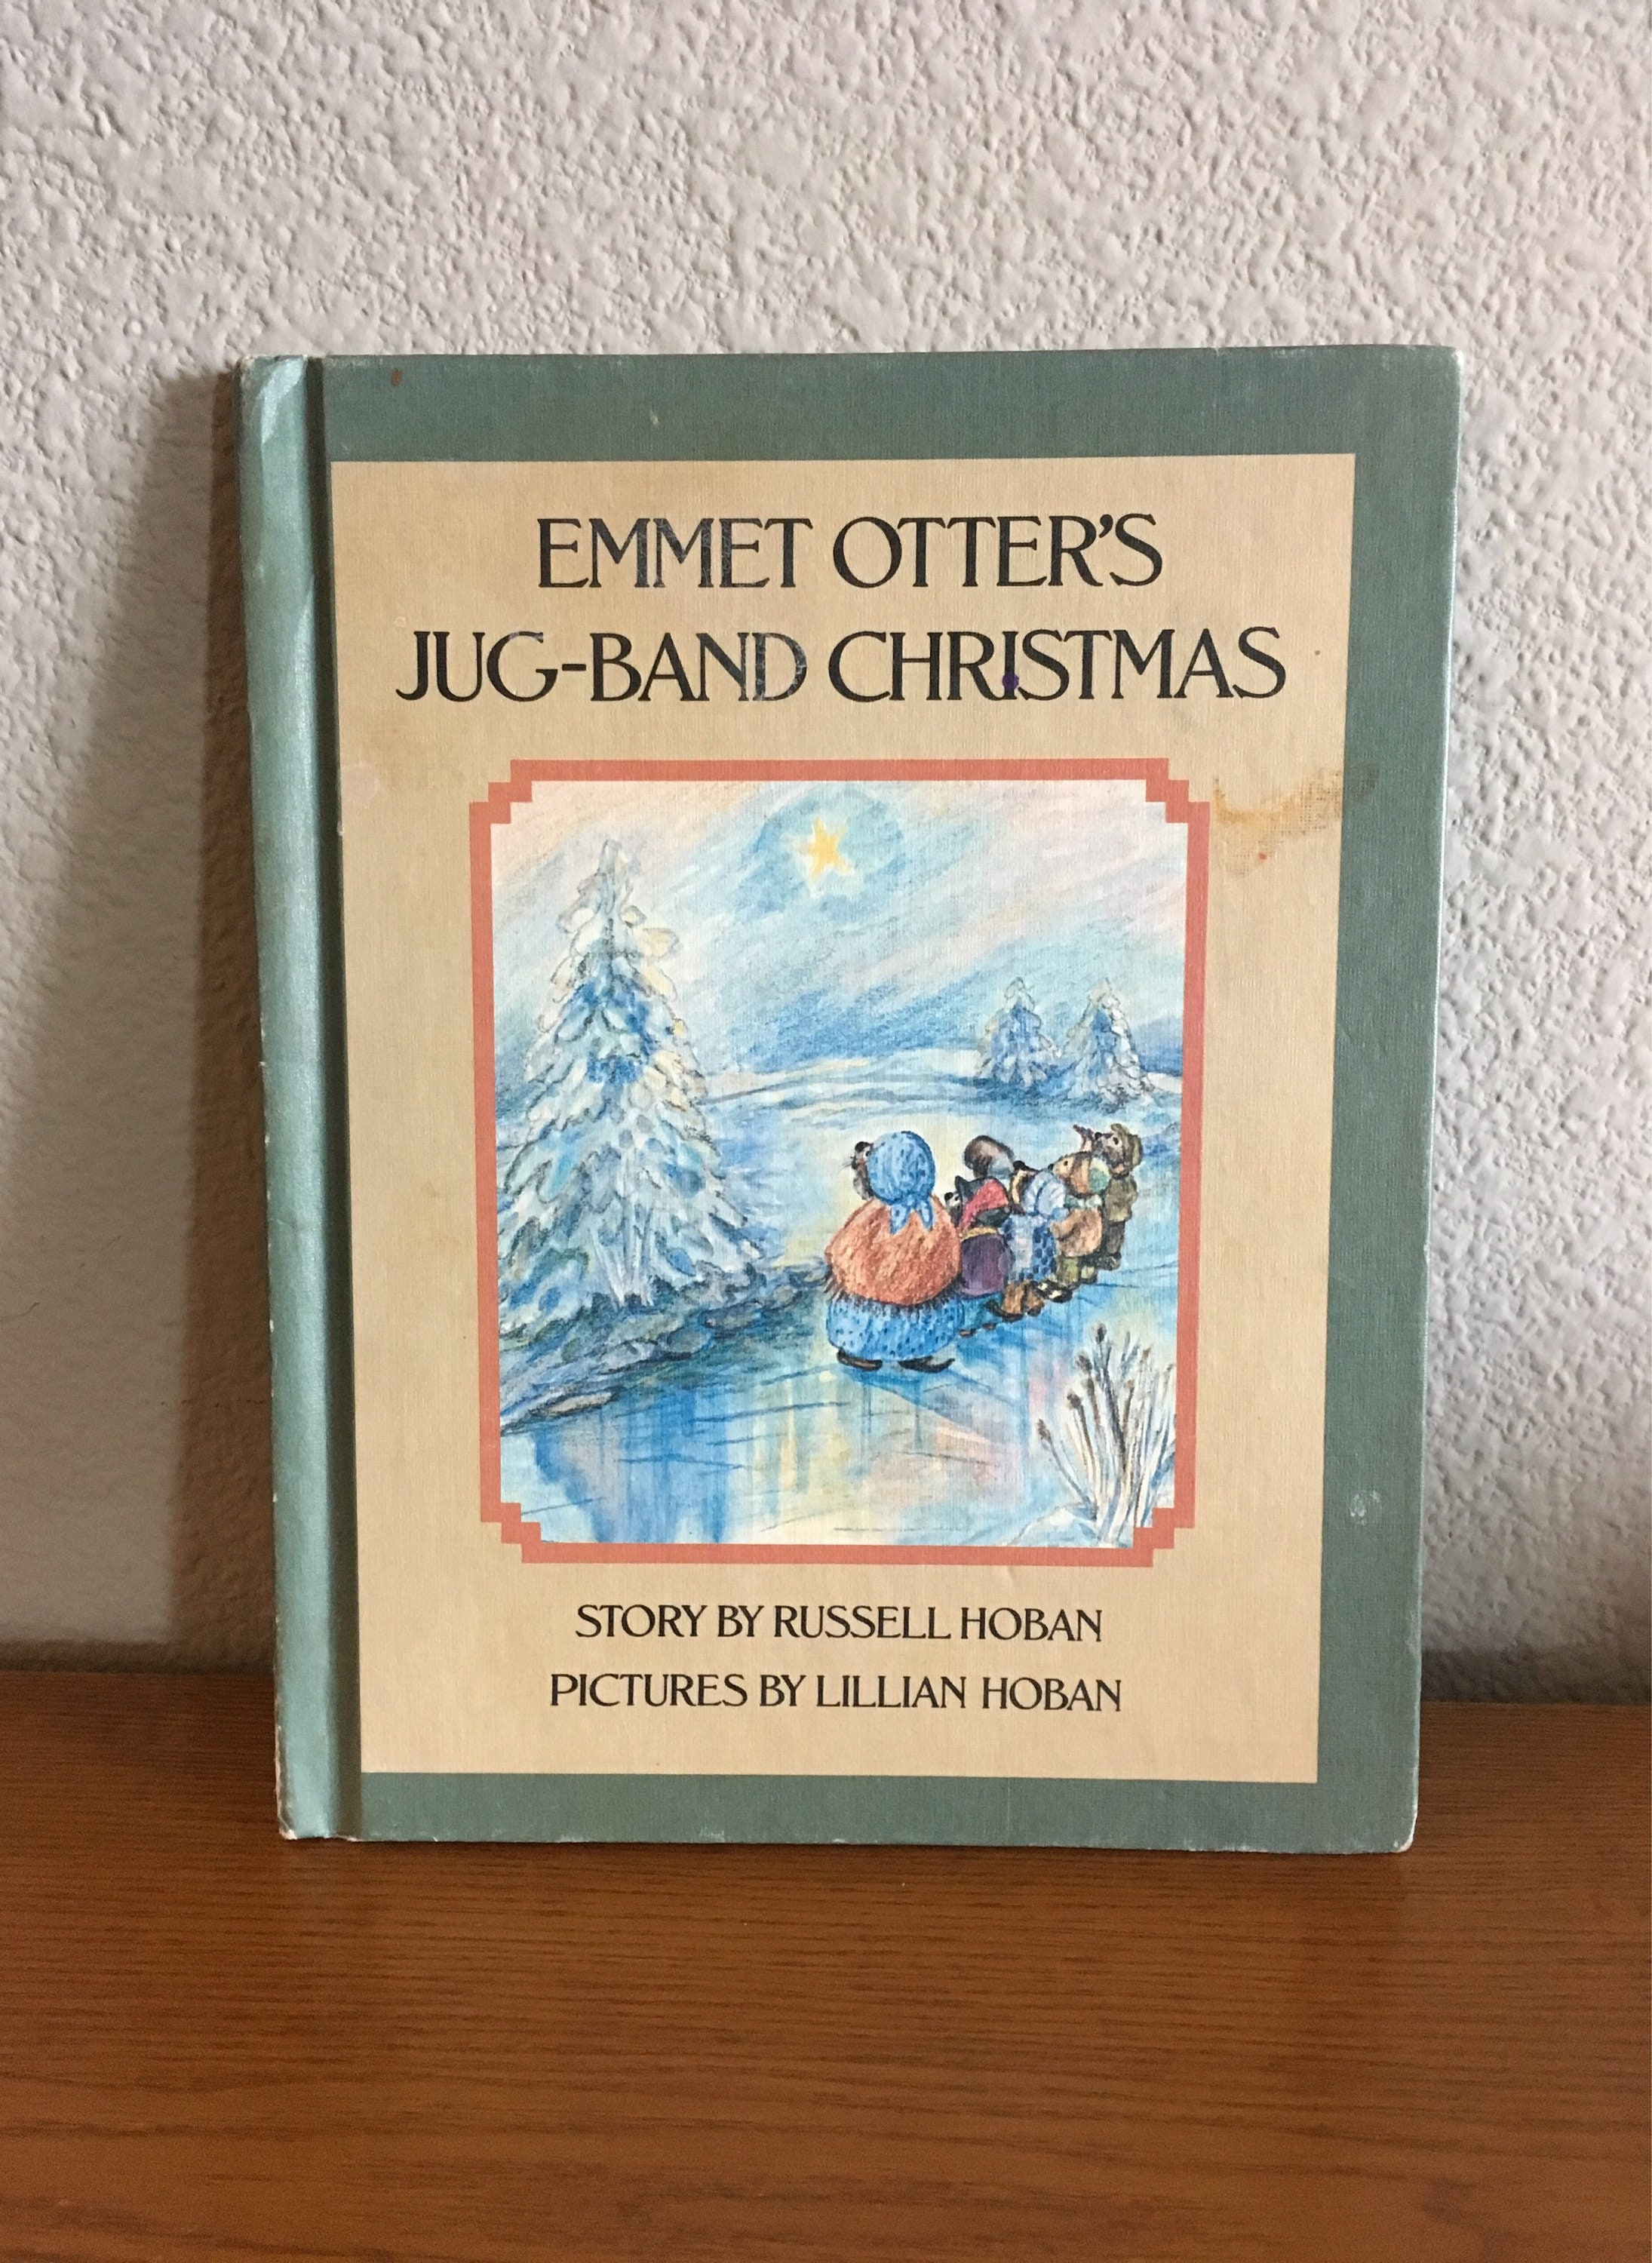 1971 Edition of Emmet Otter\'s Jug-Band Christmas by